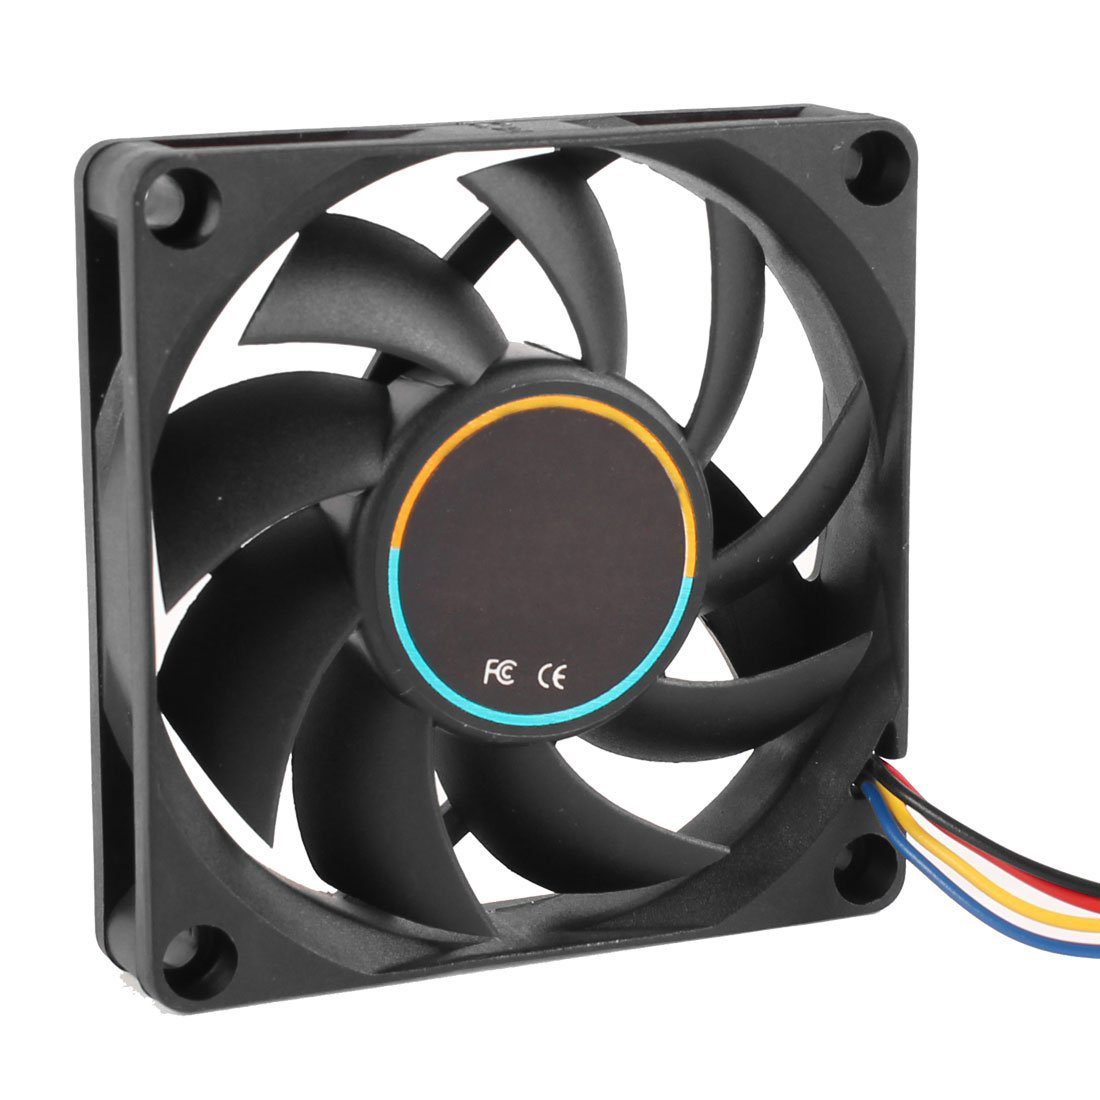 PROMOTION! Hot 70mmx15mm 12V 4 Pins PWM PC Computer Case CPU Cooler Cooling Fan Black new 3u ultra short computer case 380mm large panel big power supply ultra short 3u computer case server computer case